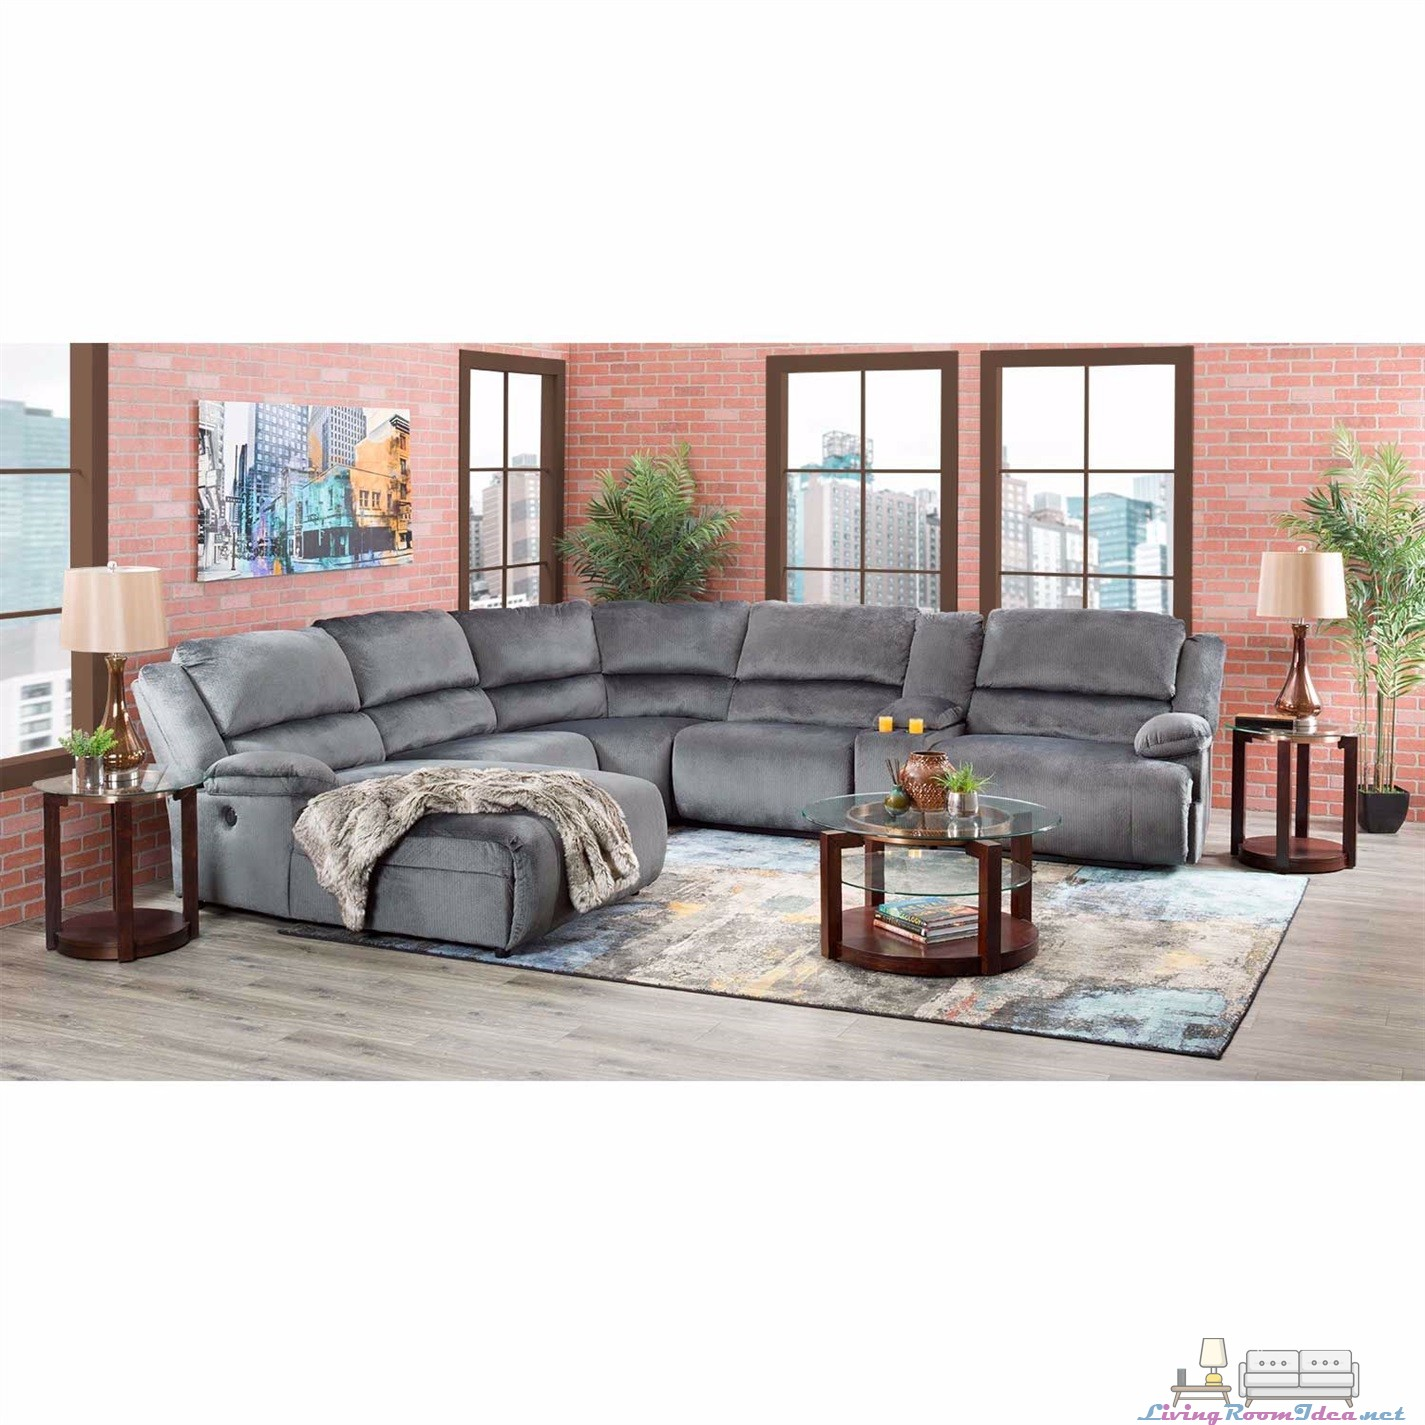 Clonmel 6 Pieces Sectional